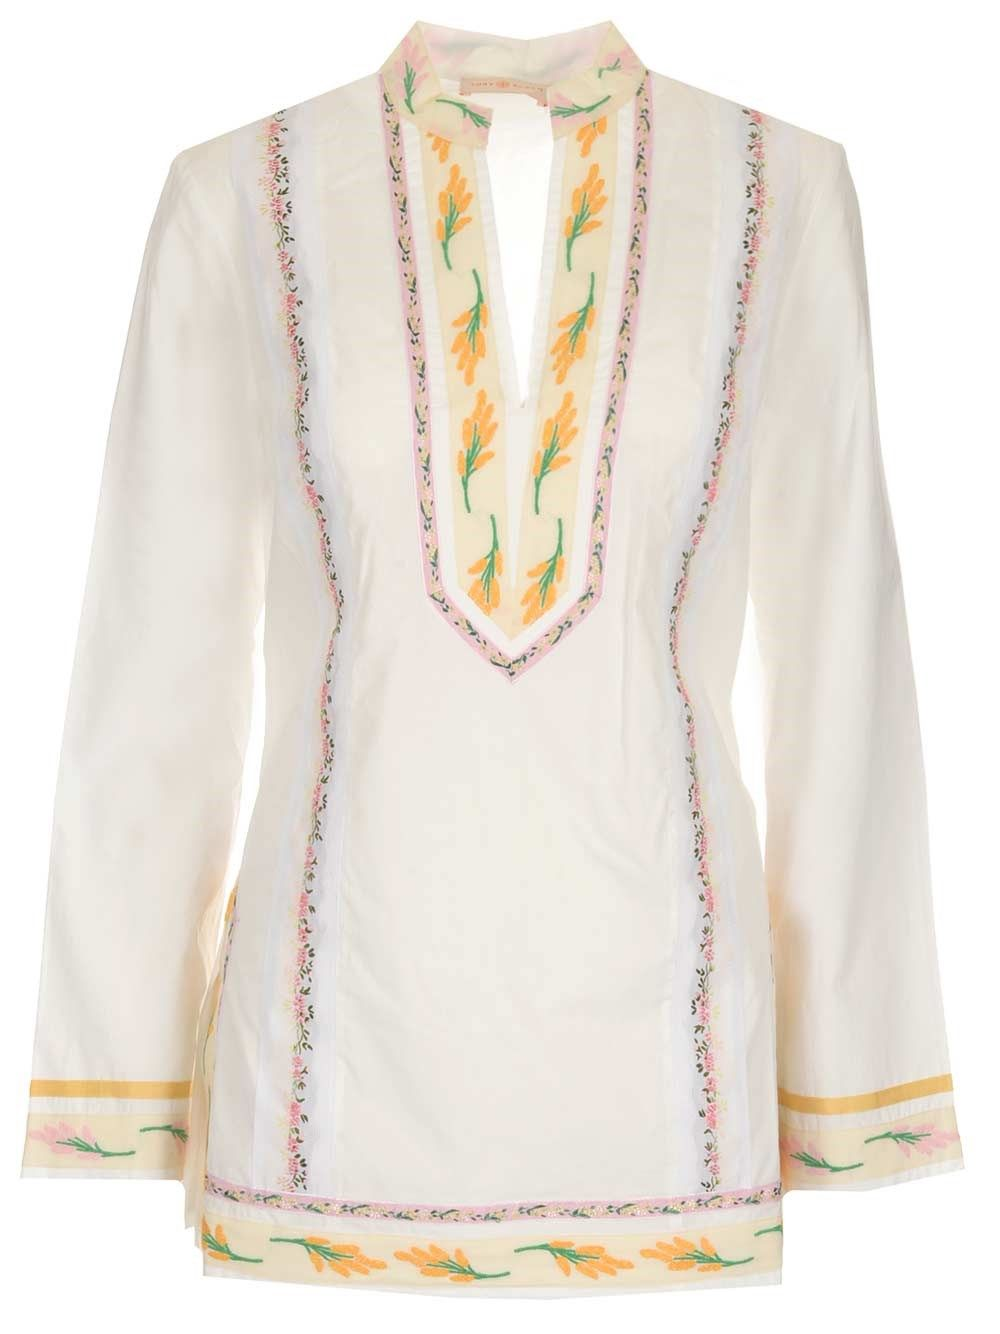 Tory Burch TORY BURCH WOMEN'S WHITE COTTON BLOUSE